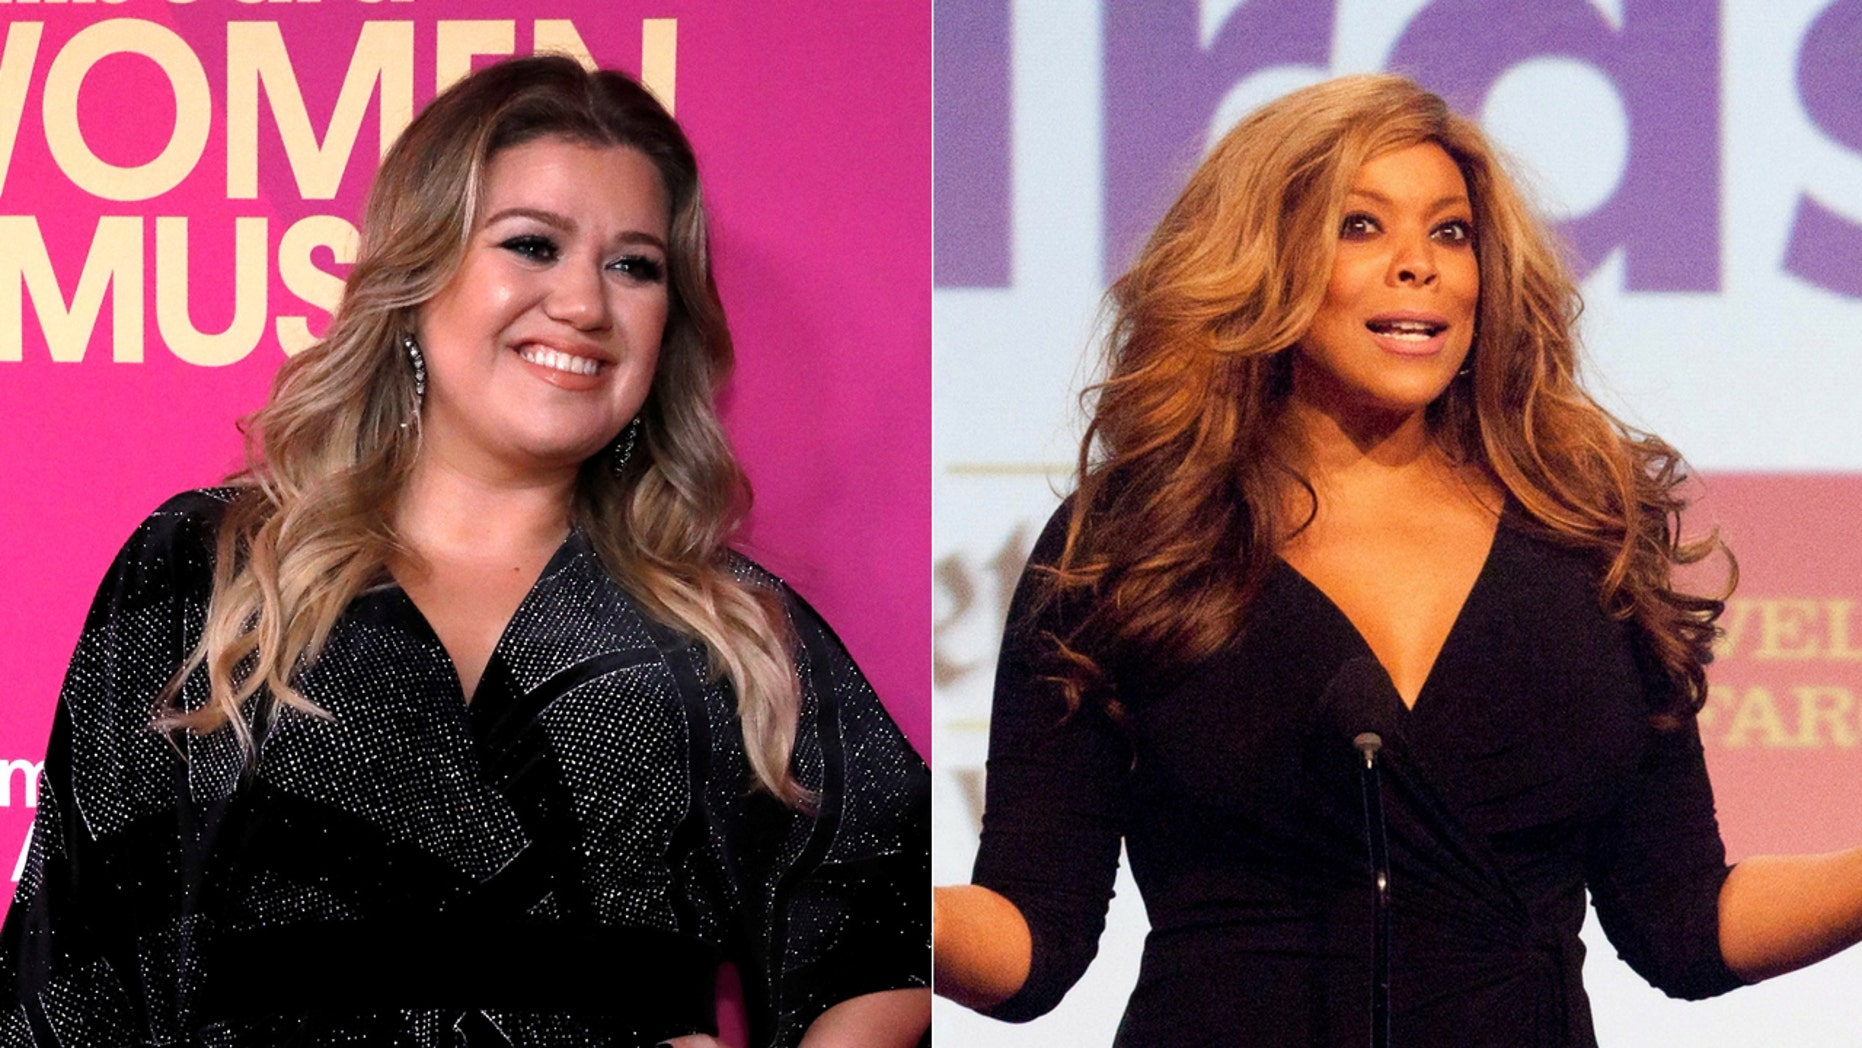 Wendy Williams made a joke about Kelly Clarkson's weight on her TV show this week.